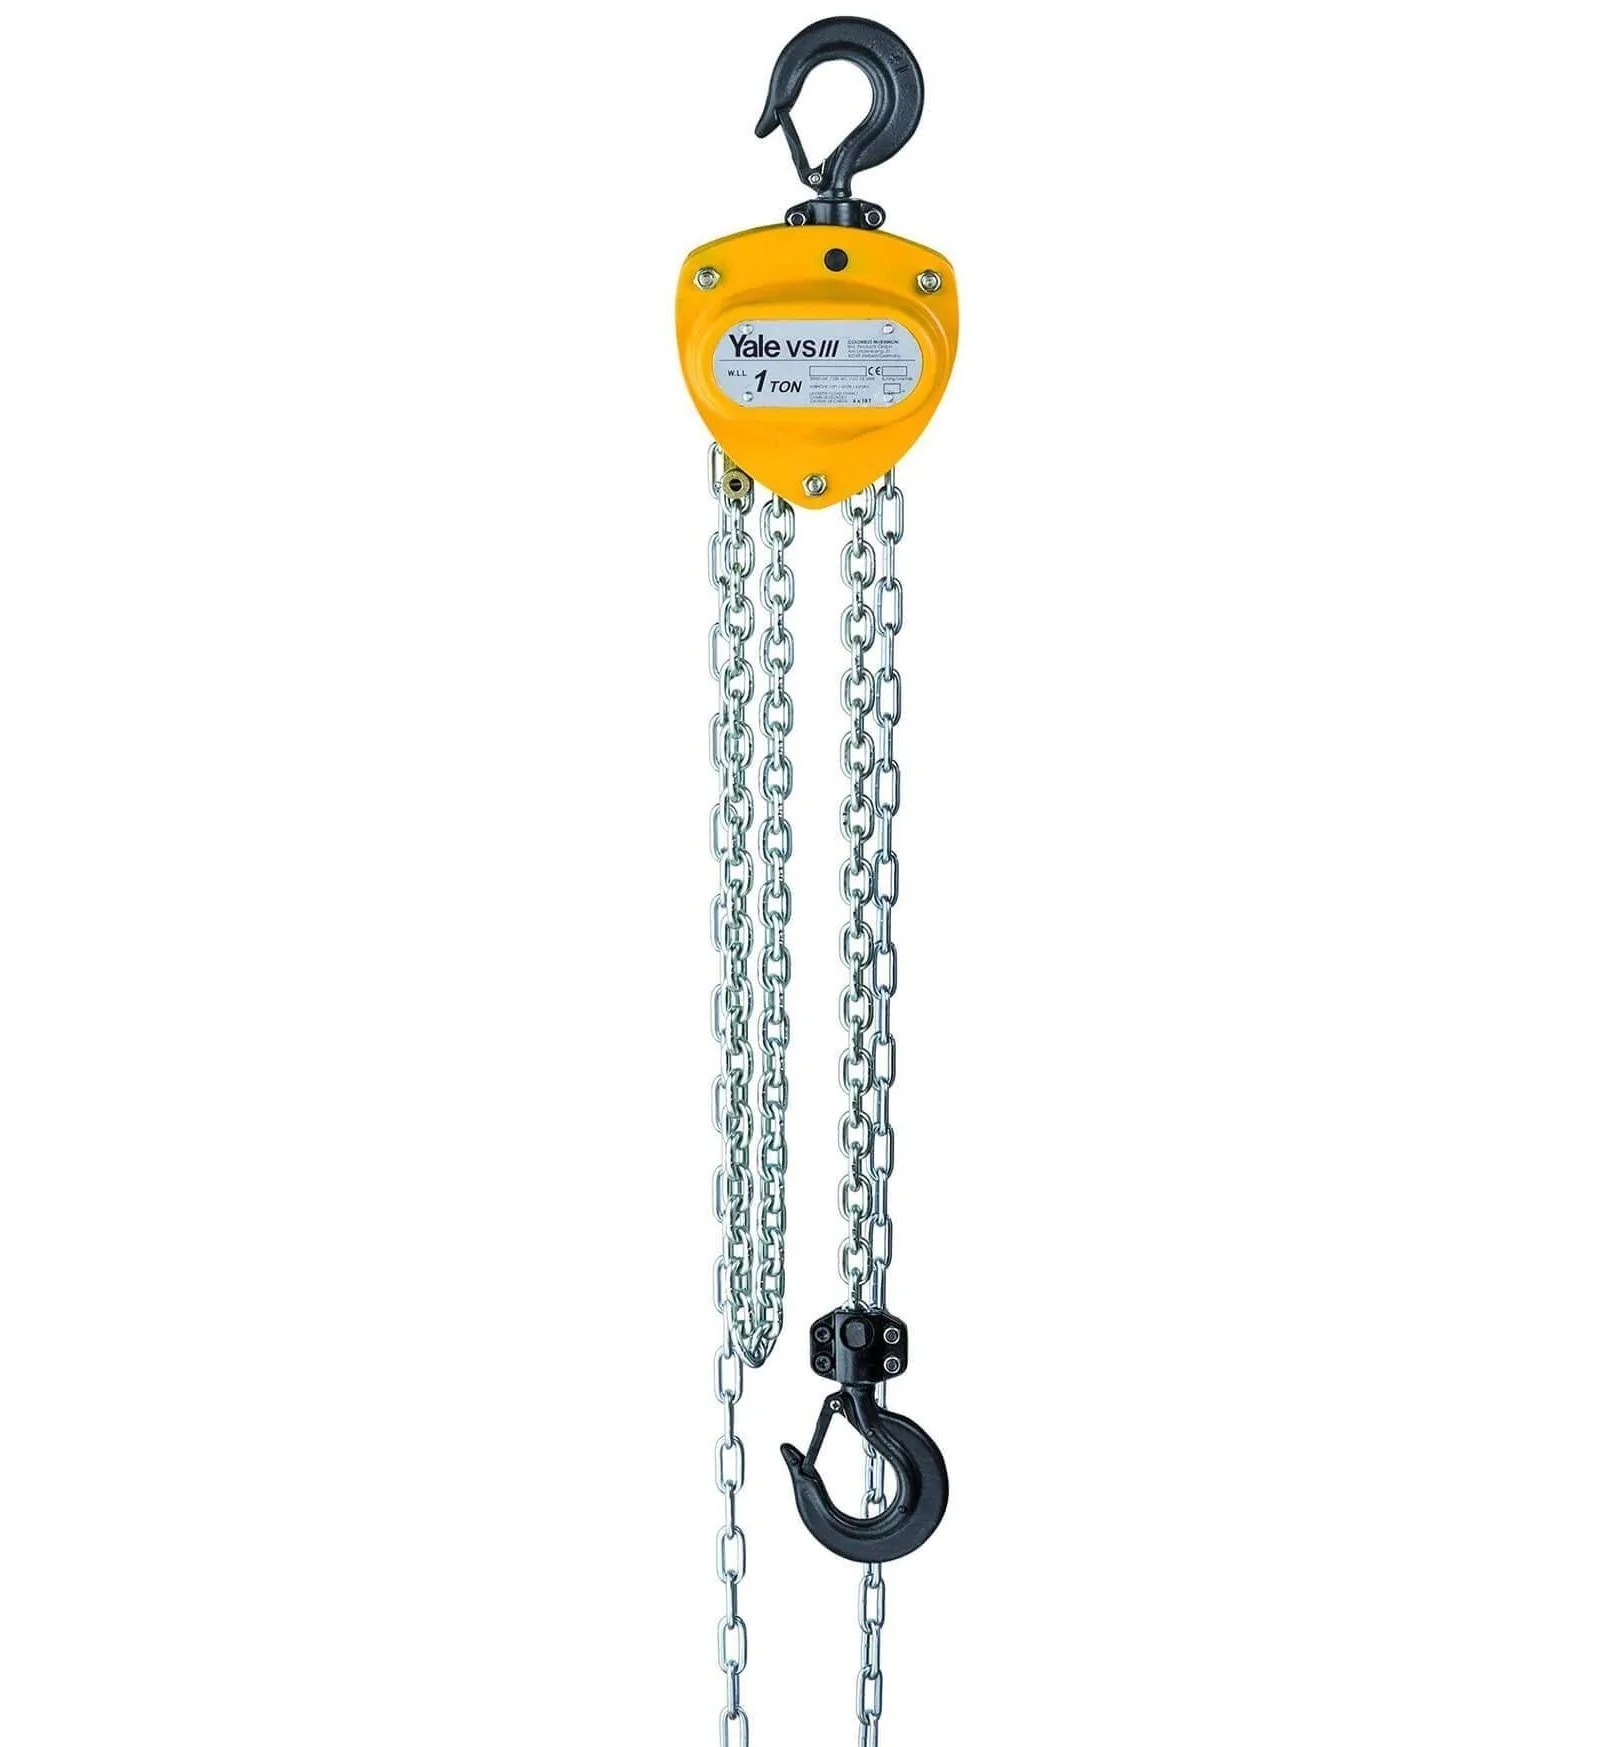 hight resolution of yale chain hoist wiring diagram wiring diagram datasource yale chain hoist wiring diagram